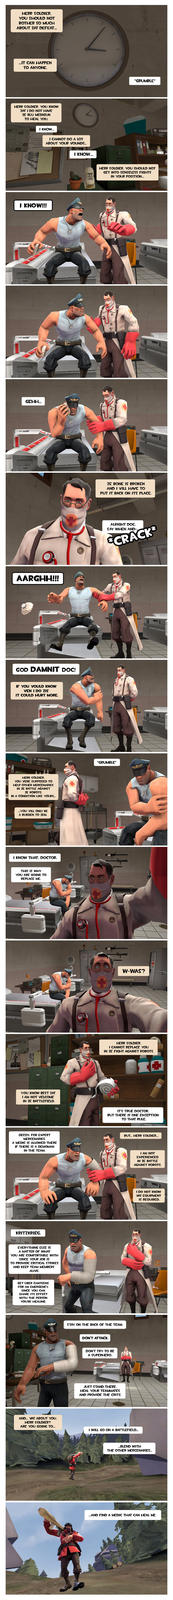 Strict Soldier's guide for MvM: Medic